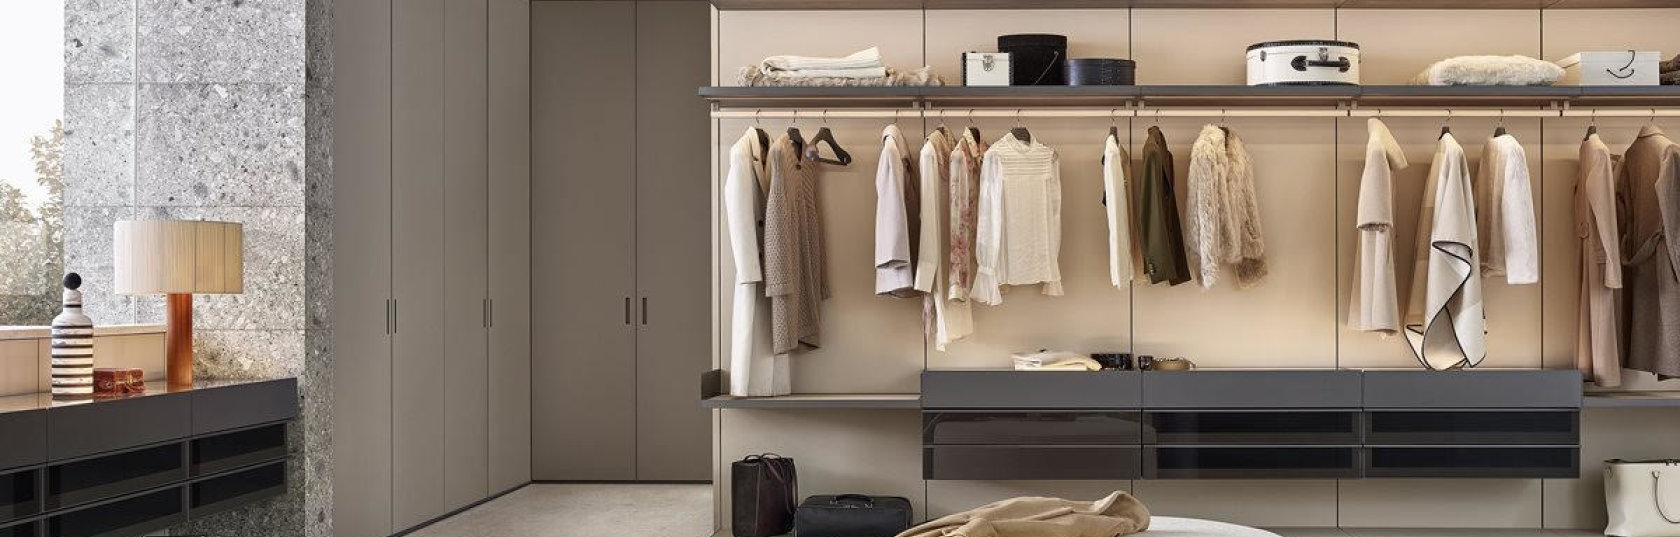 Wardrobe design trends: compositional freedom, texture and bespoke features